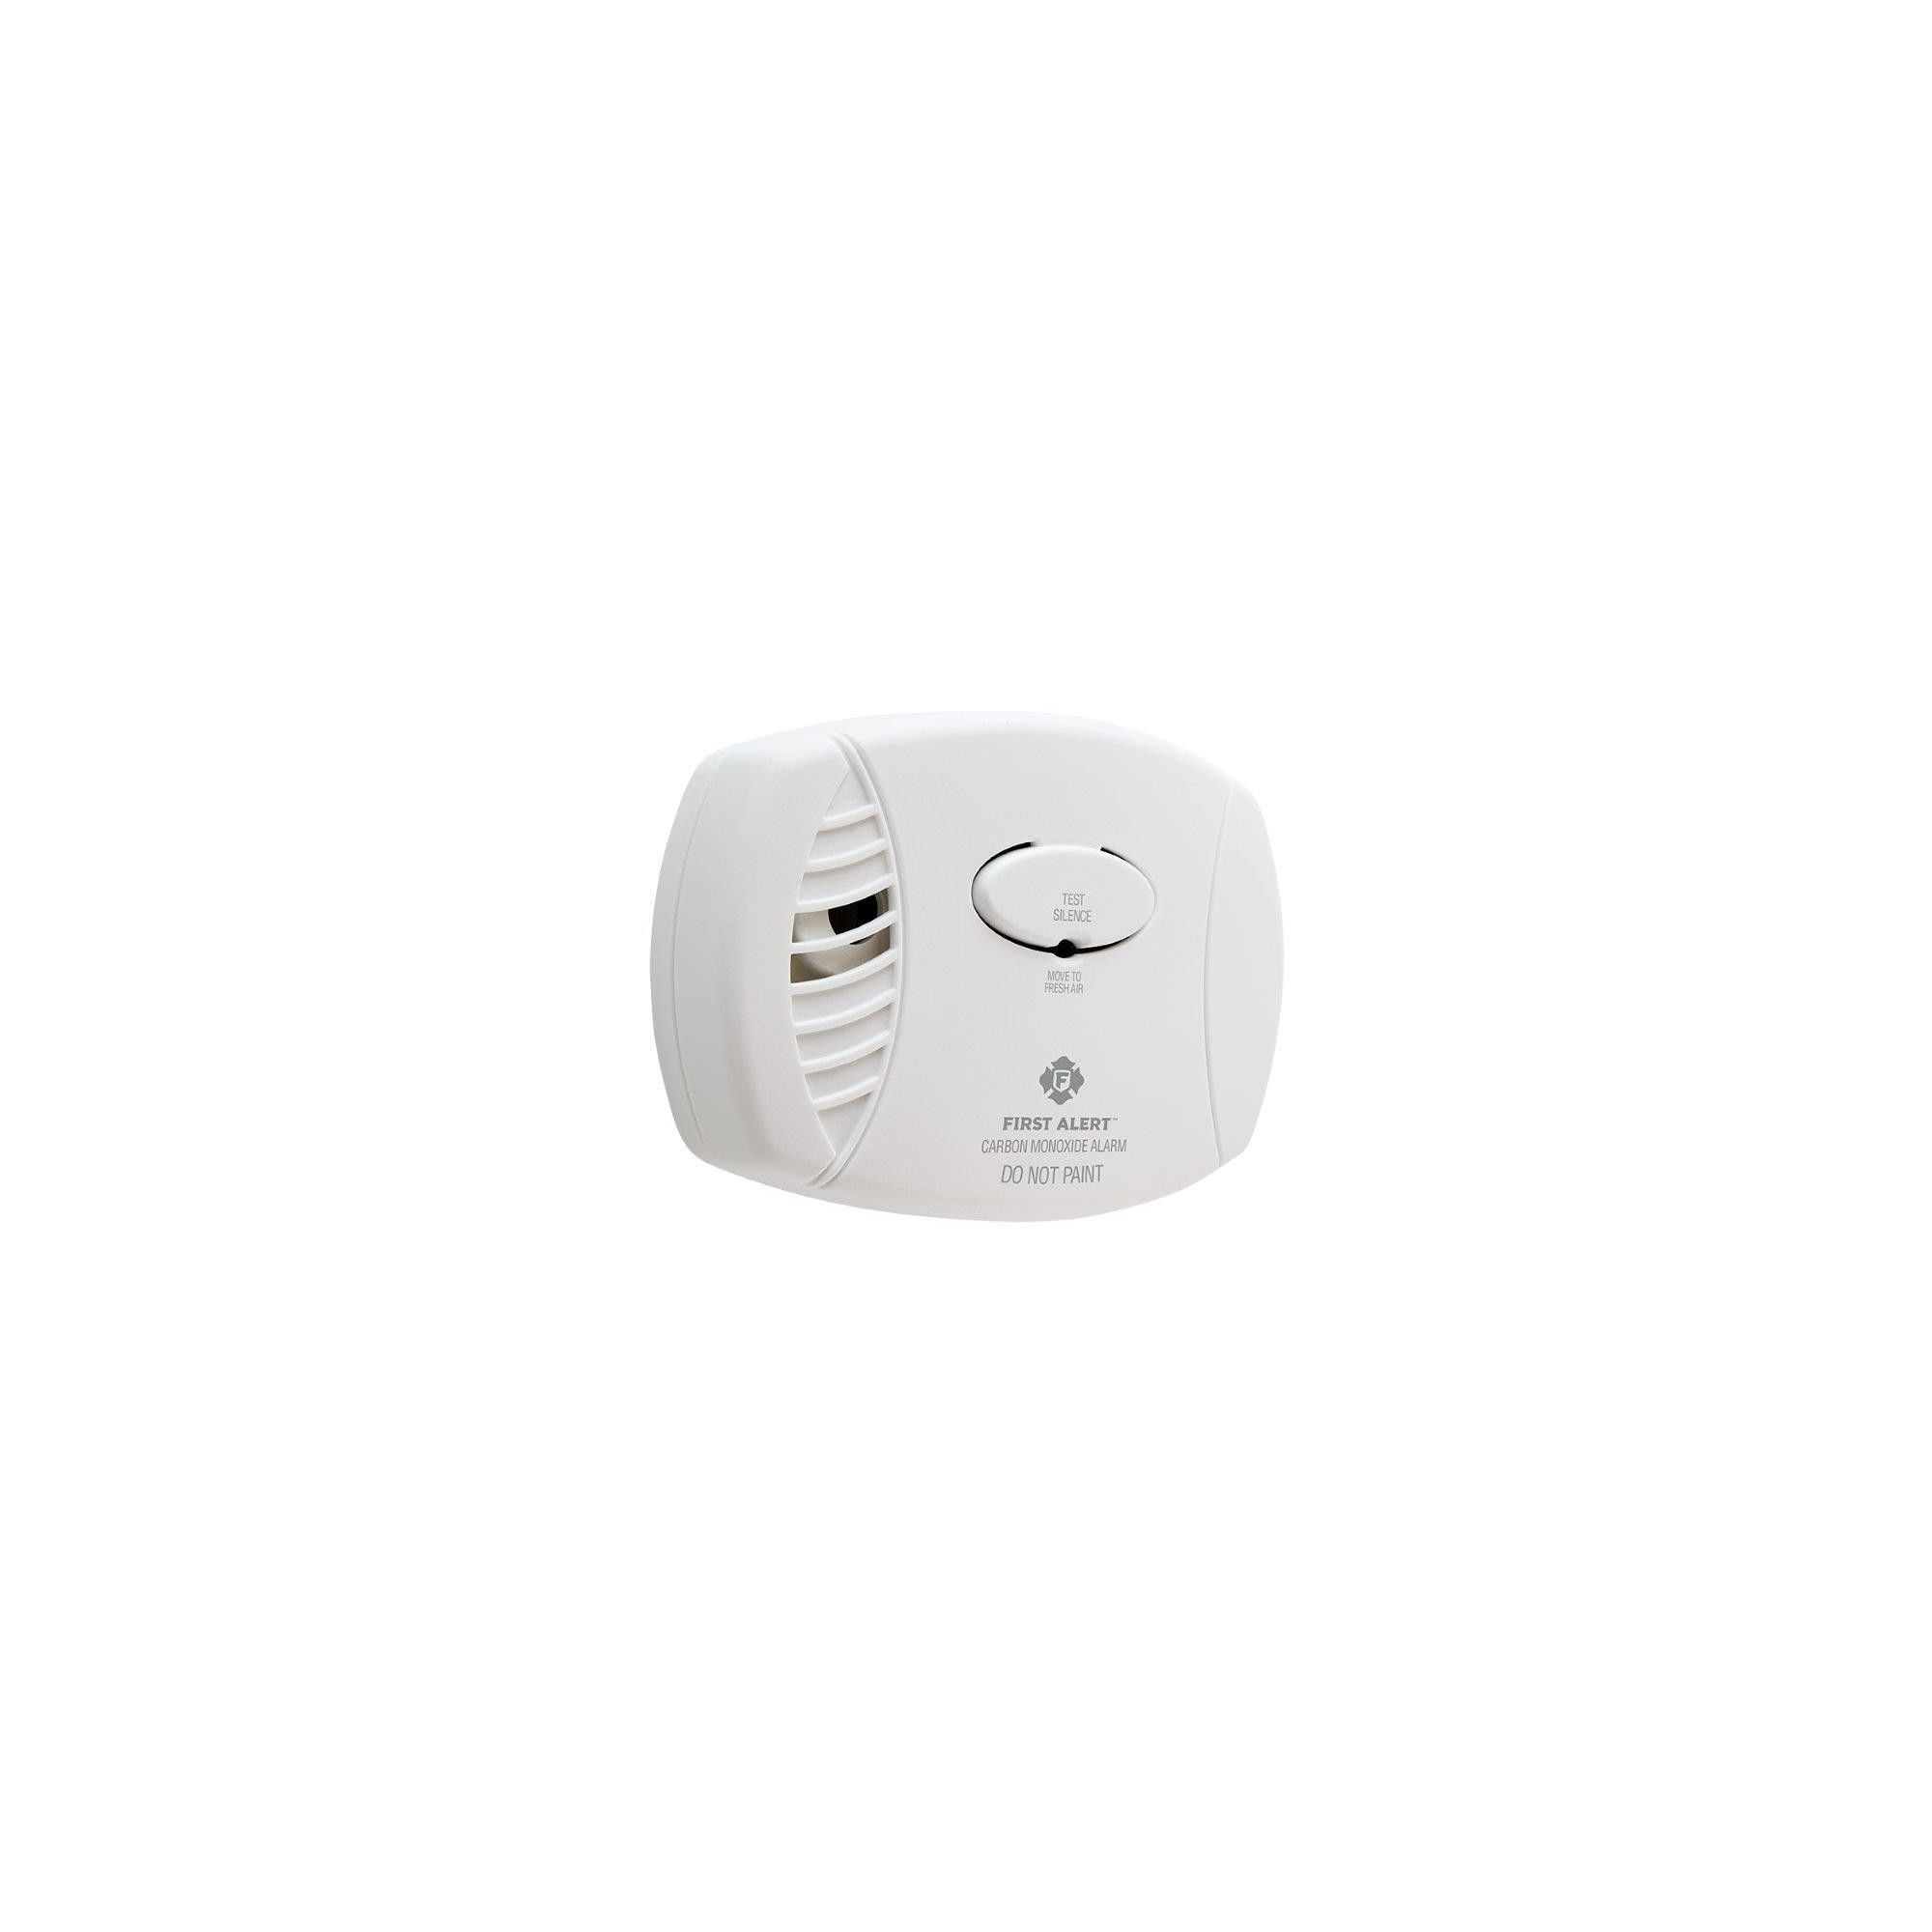 First Alert Battery Operated Carbon Monoxide Alarm Carbon Monoxide Alarms Battery Operated 9 Volt Battery